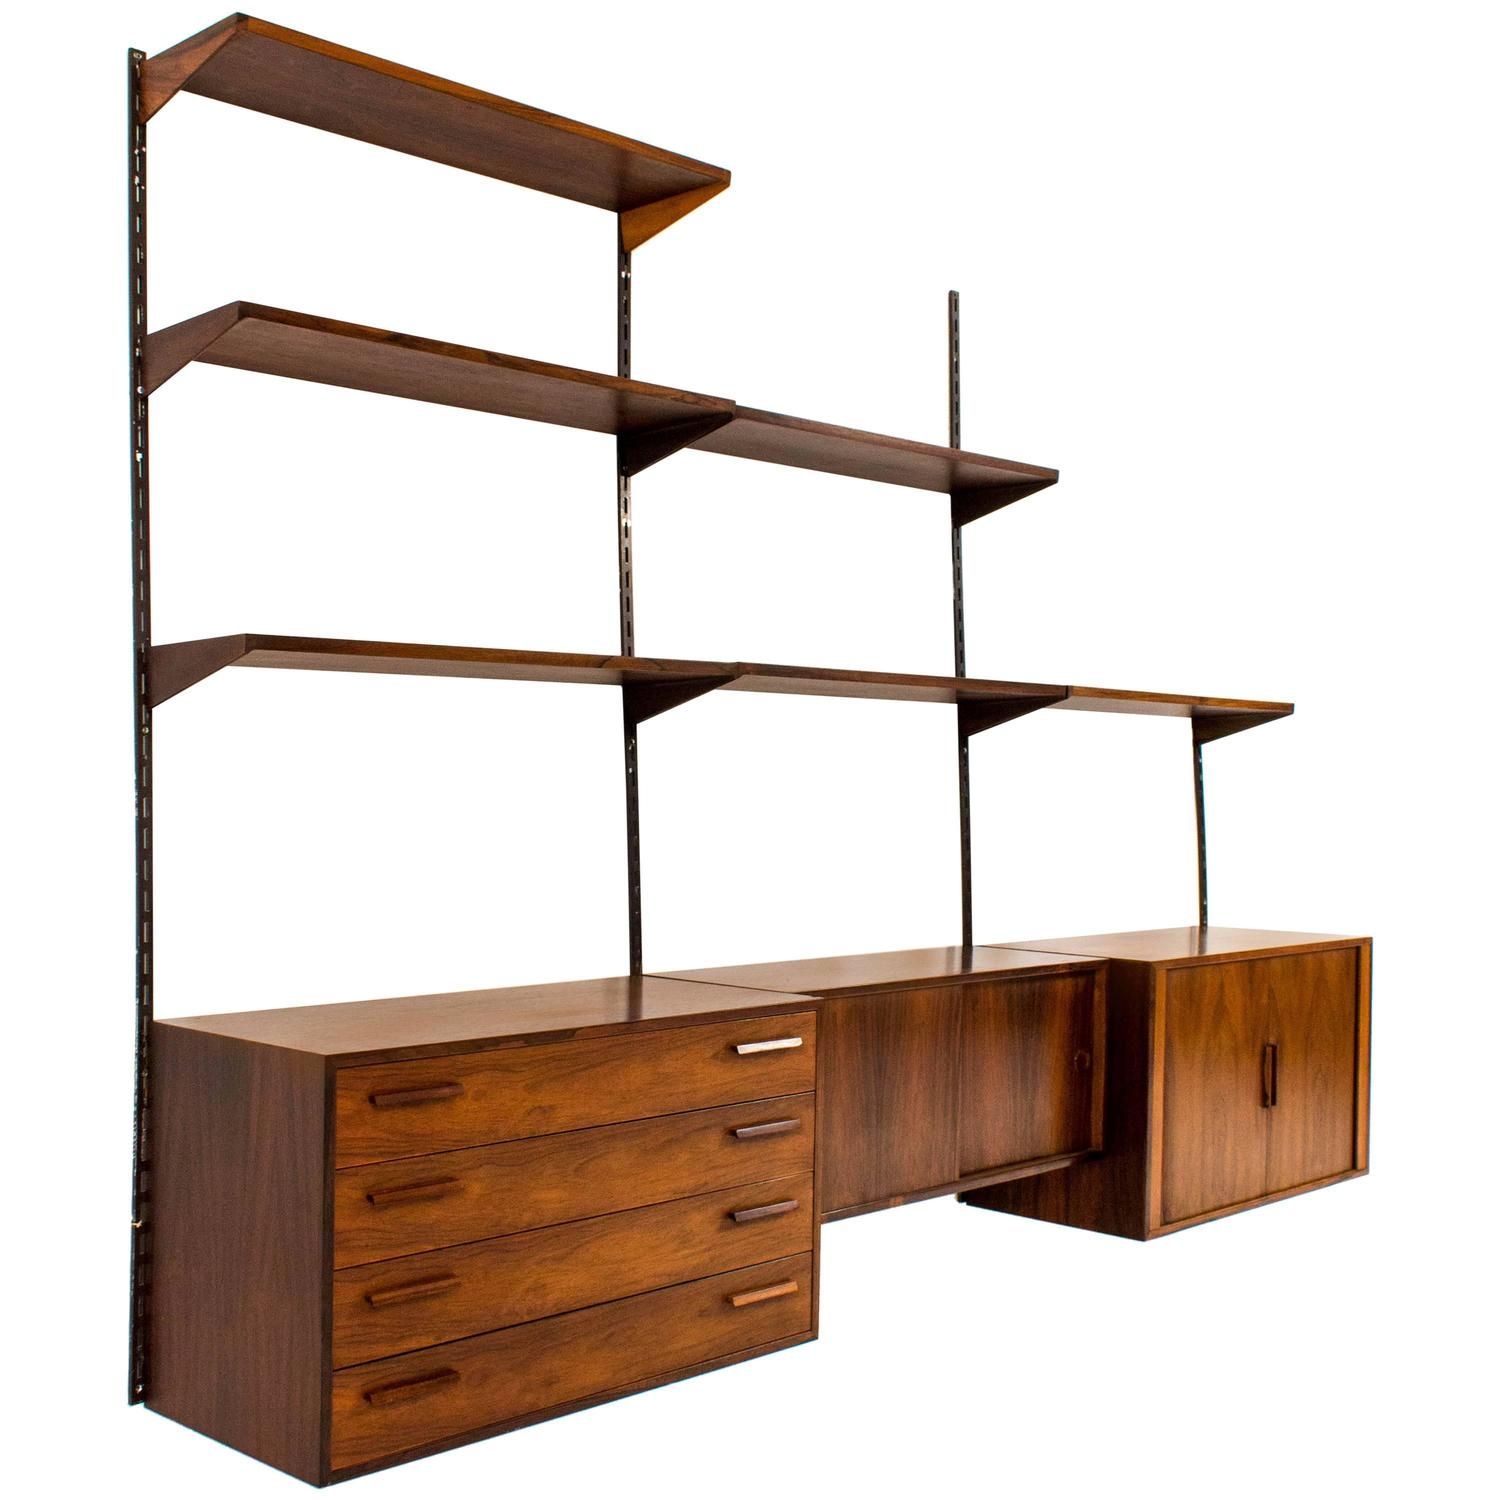 stylish wall mounted shelving unit by kai kristiansen for. Black Bedroom Furniture Sets. Home Design Ideas